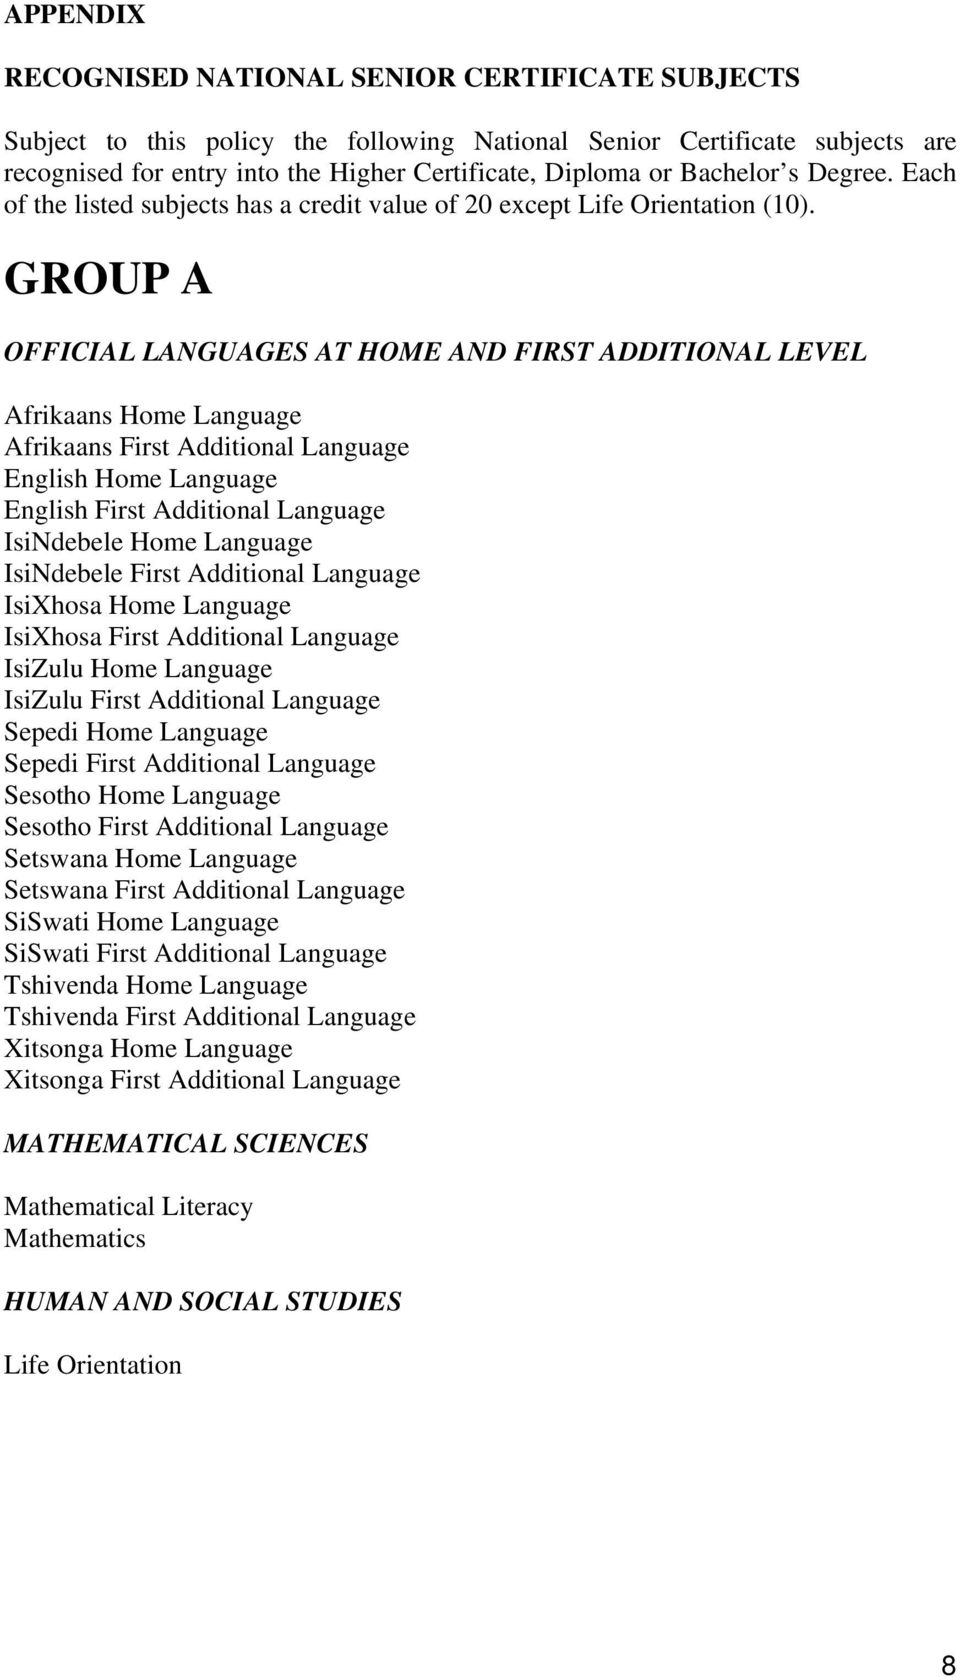 GROUP A OFFICIAL LANGUAGES AT HOME AND FIRST ADDITIONAL LEVEL Afrikaans Home Language Afrikaans First Additional Language English Home Language English First Additional Language IsiNdebele Home